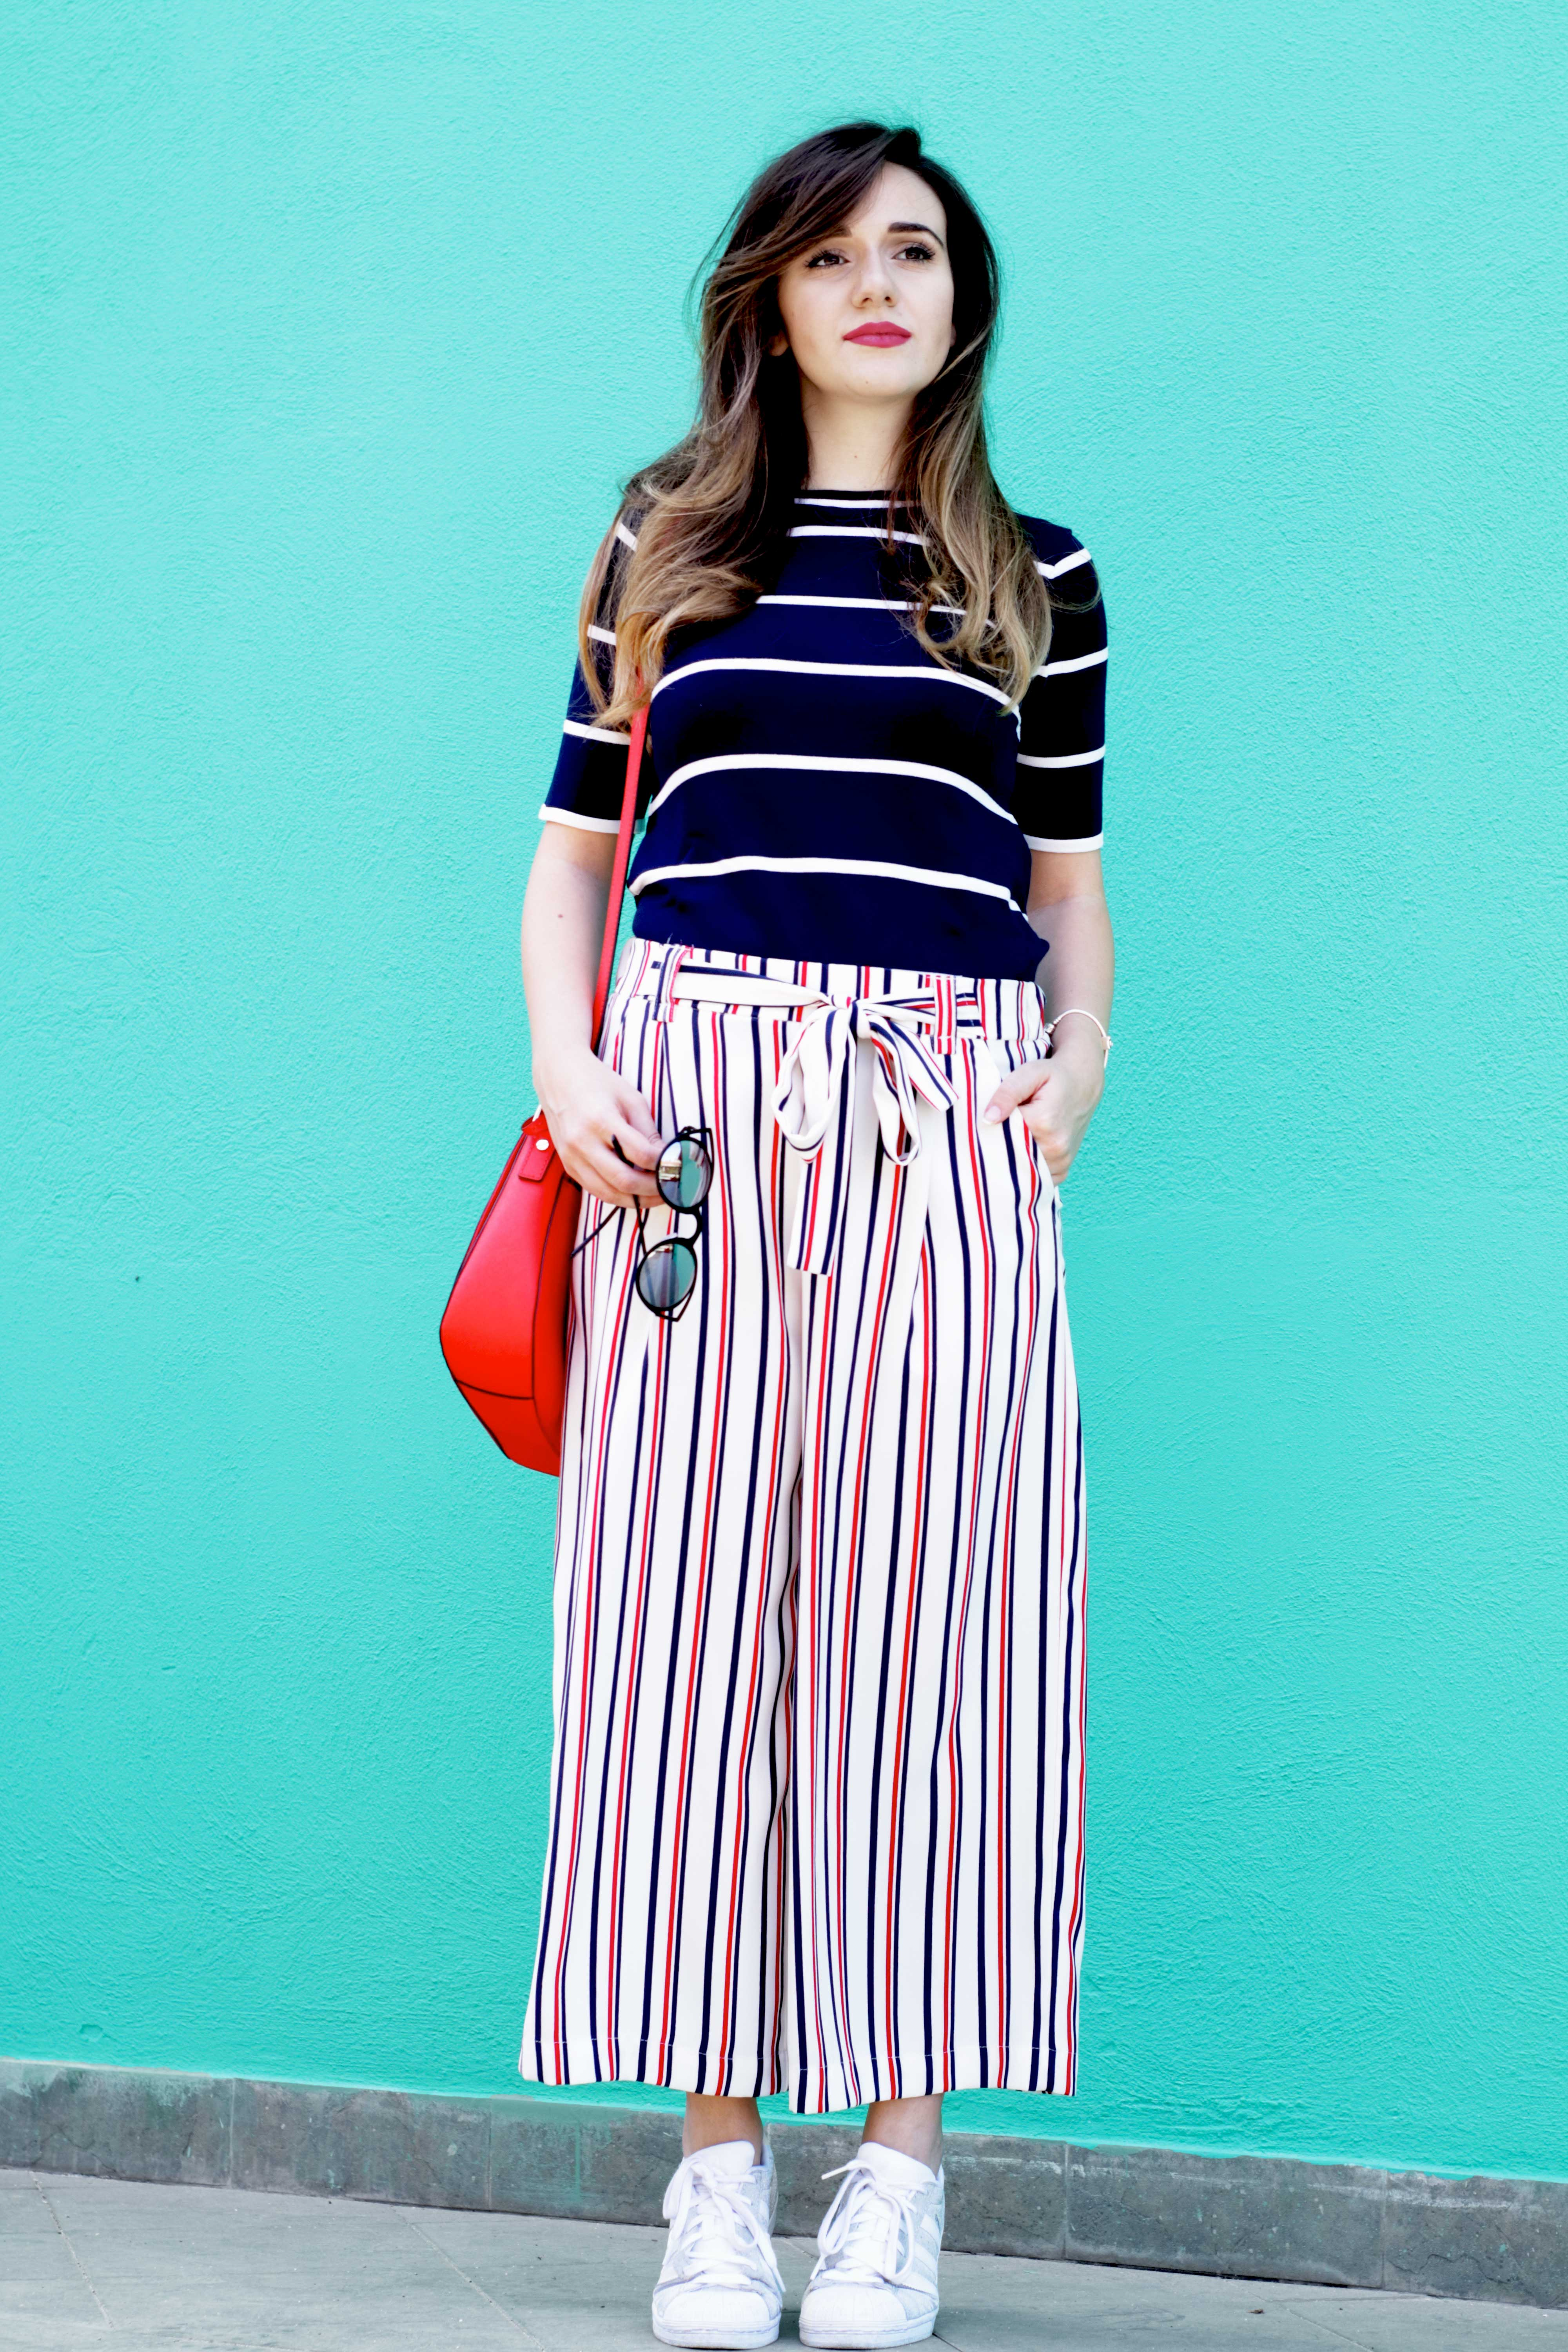 total-striped-look